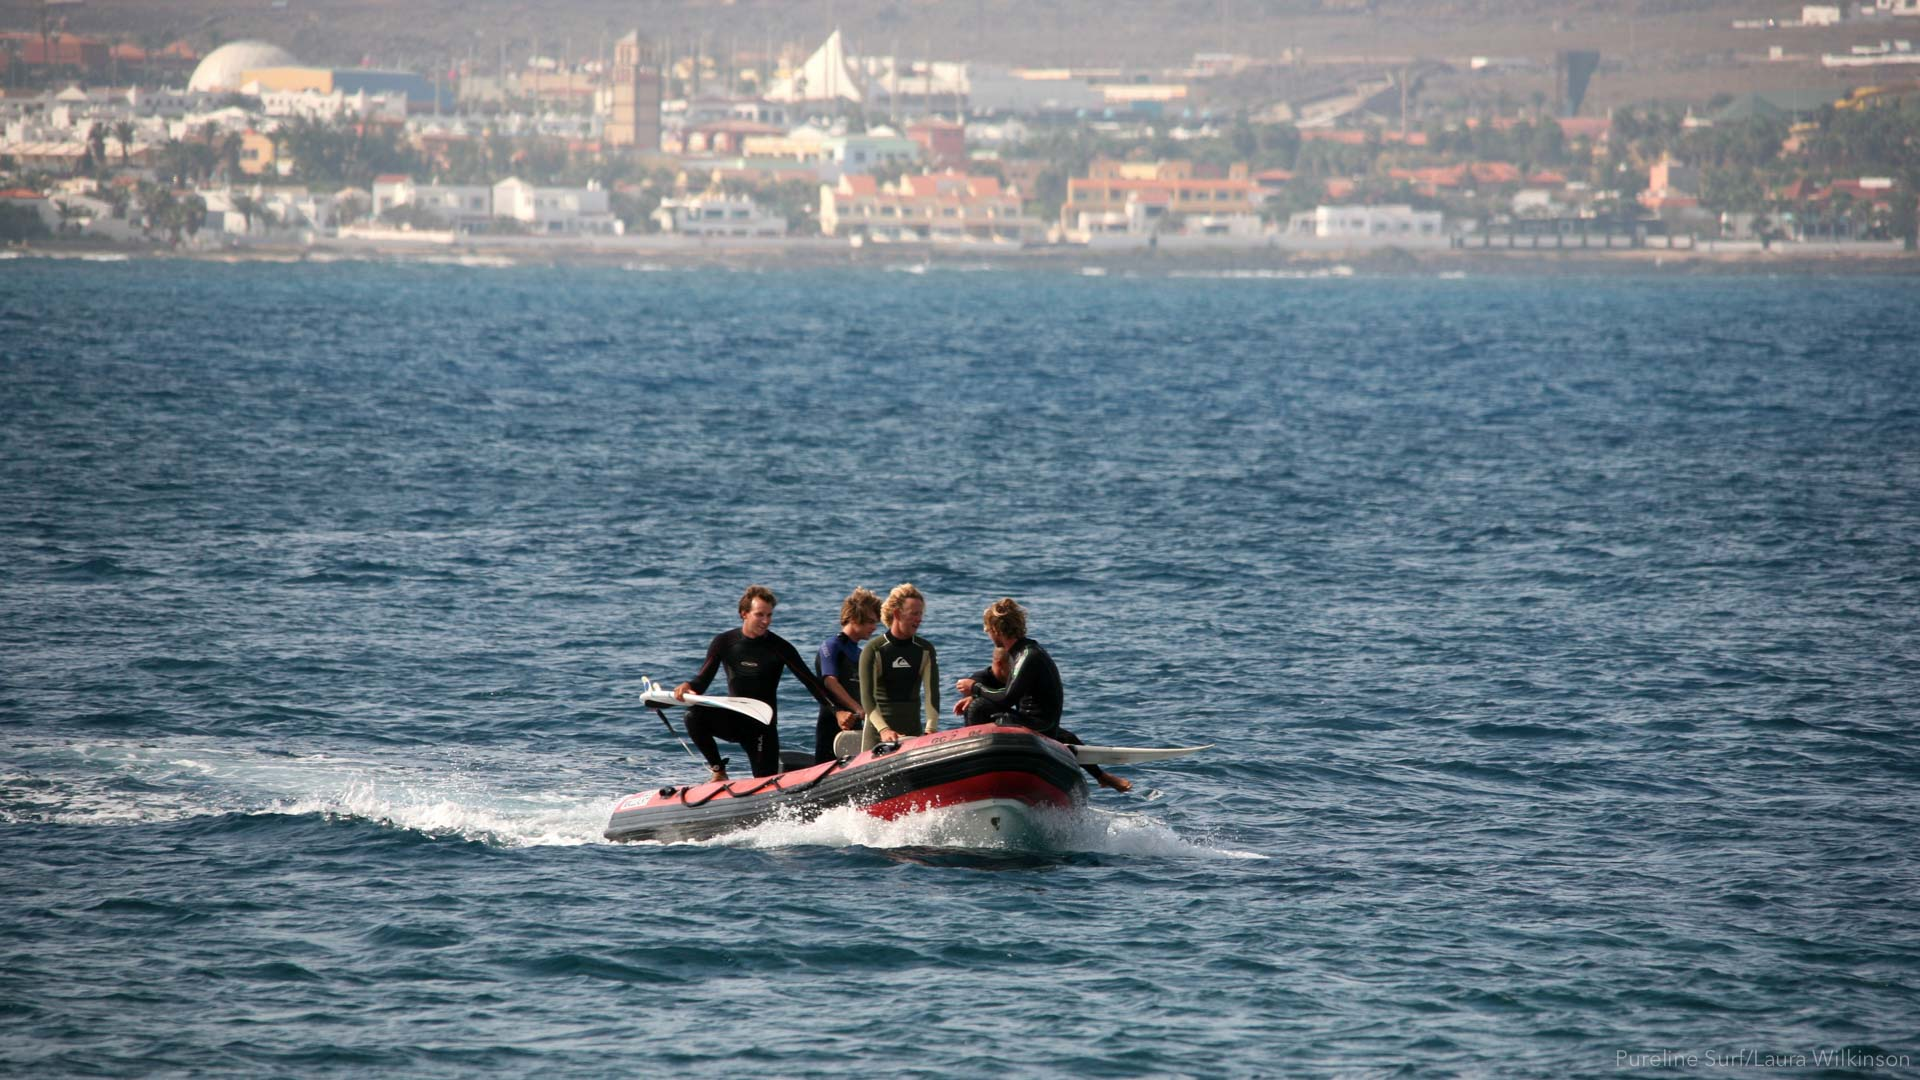 Surf boat on the way to surf Punta Lobos in Fuerteventura during a surf guiding trip with Pureline Surf